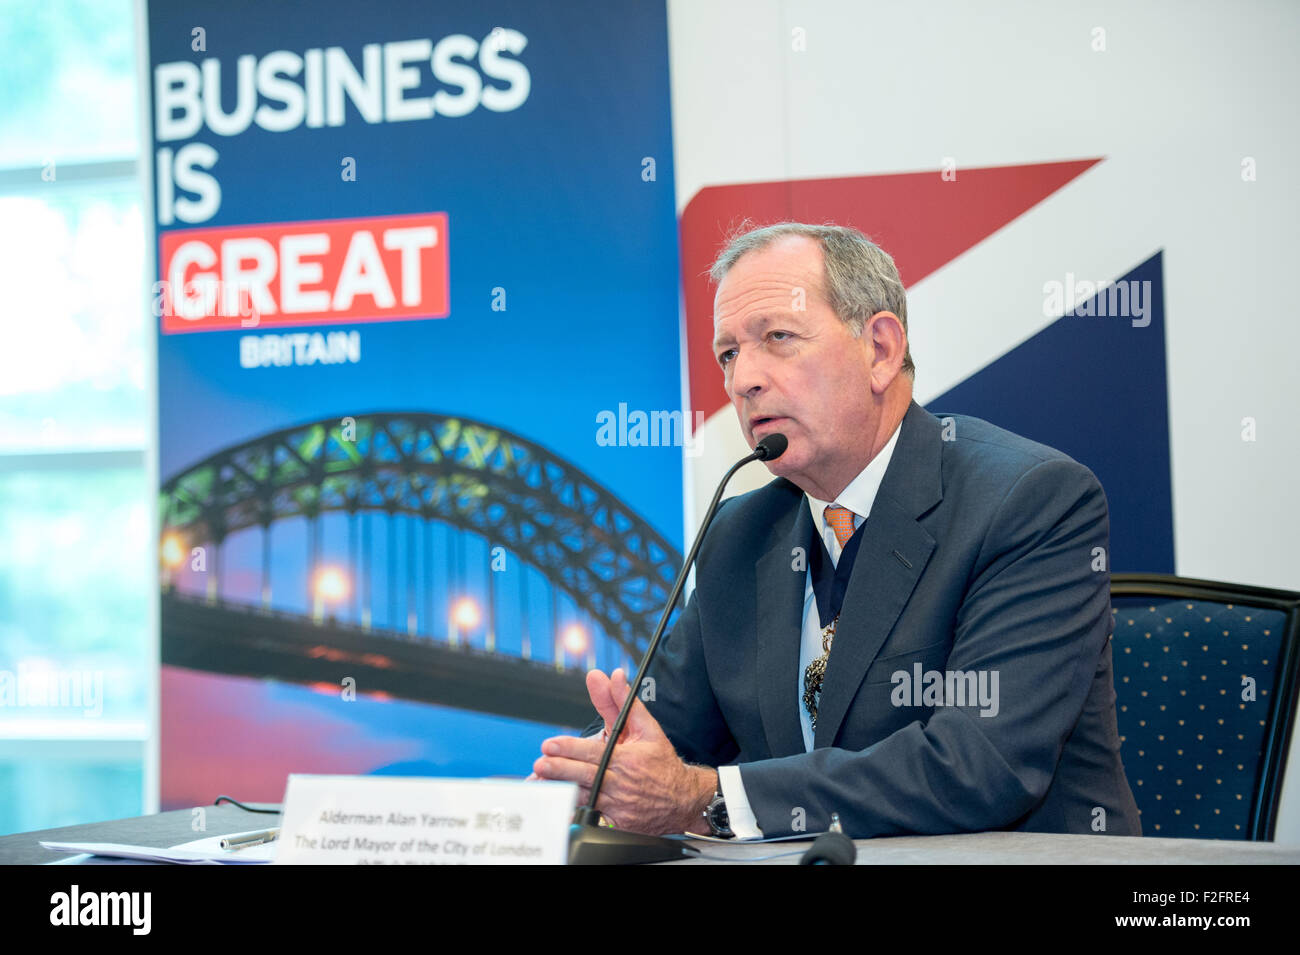 Hong Kong. 18th September, 2015. Alderman Alan Yarrow, The Lord Mayor of London, talks to the press at the British - Stock Image